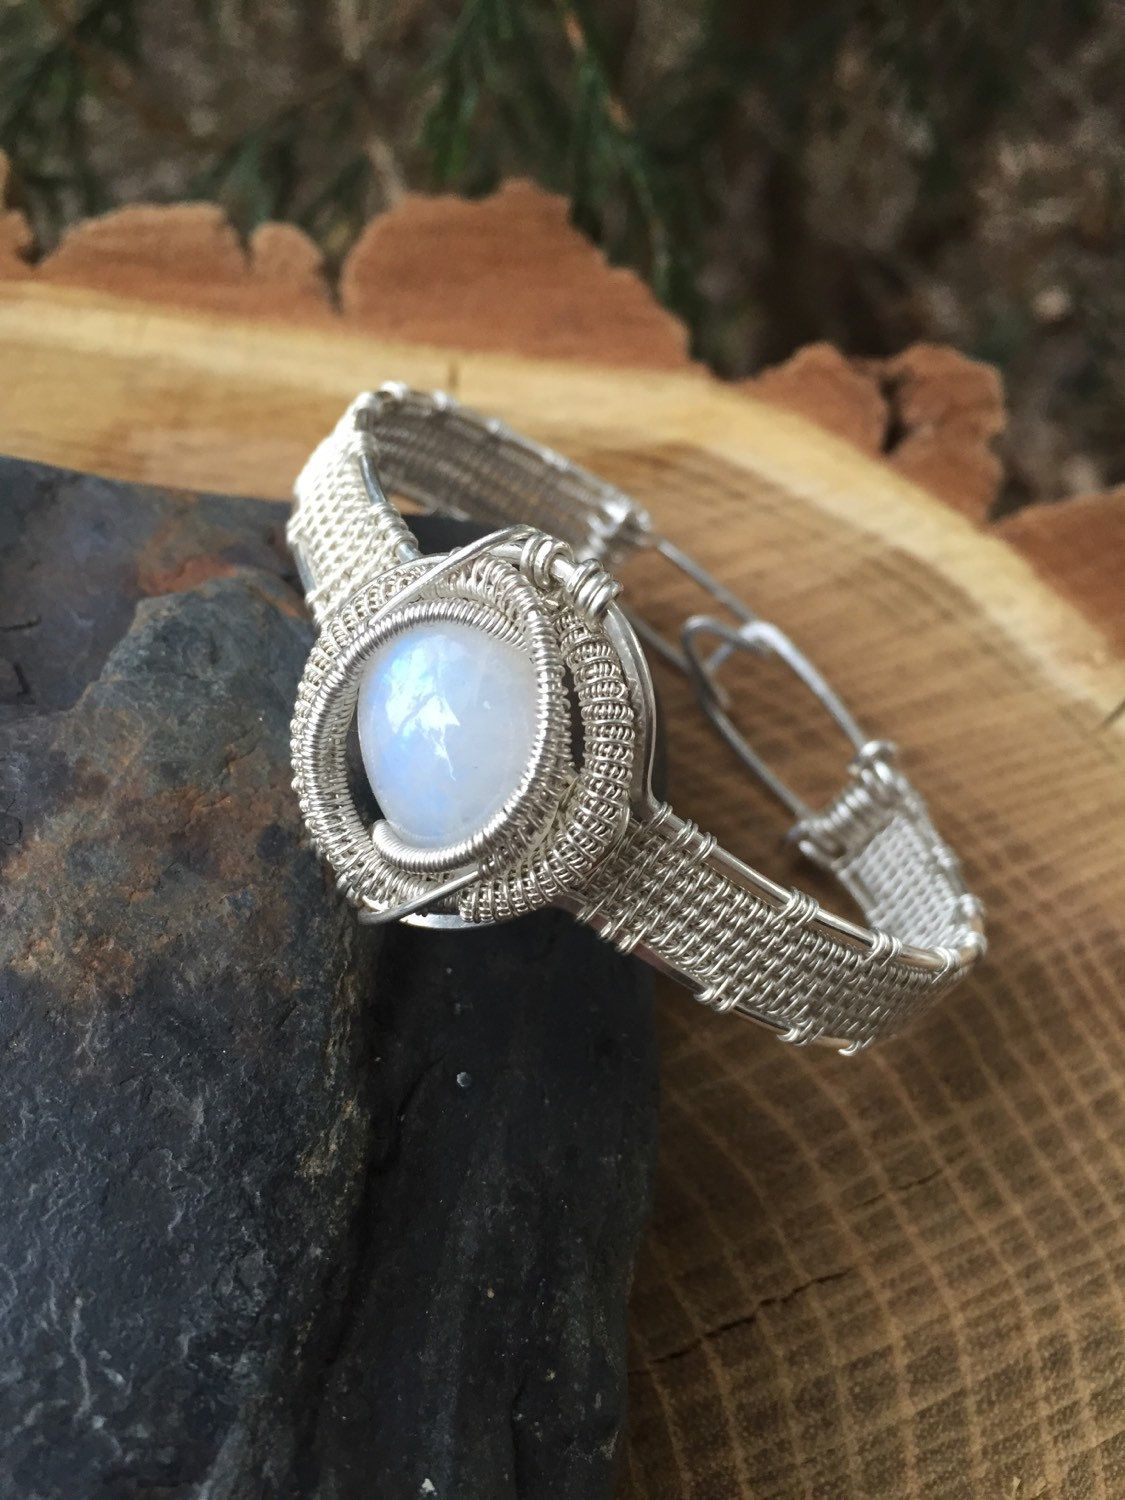 Wire Wrapped Bracelet, Moonstone Bracelet, Wire Wrap Cuff, Sterling Silver Bracelet, Rainbow Moonstone Wire Wrap, Heady Wrap by SweetWaterSilver on Etsy https://www.etsy.com/listing/258689167/wire-wrapped-bracelet-moonstone-bracelet